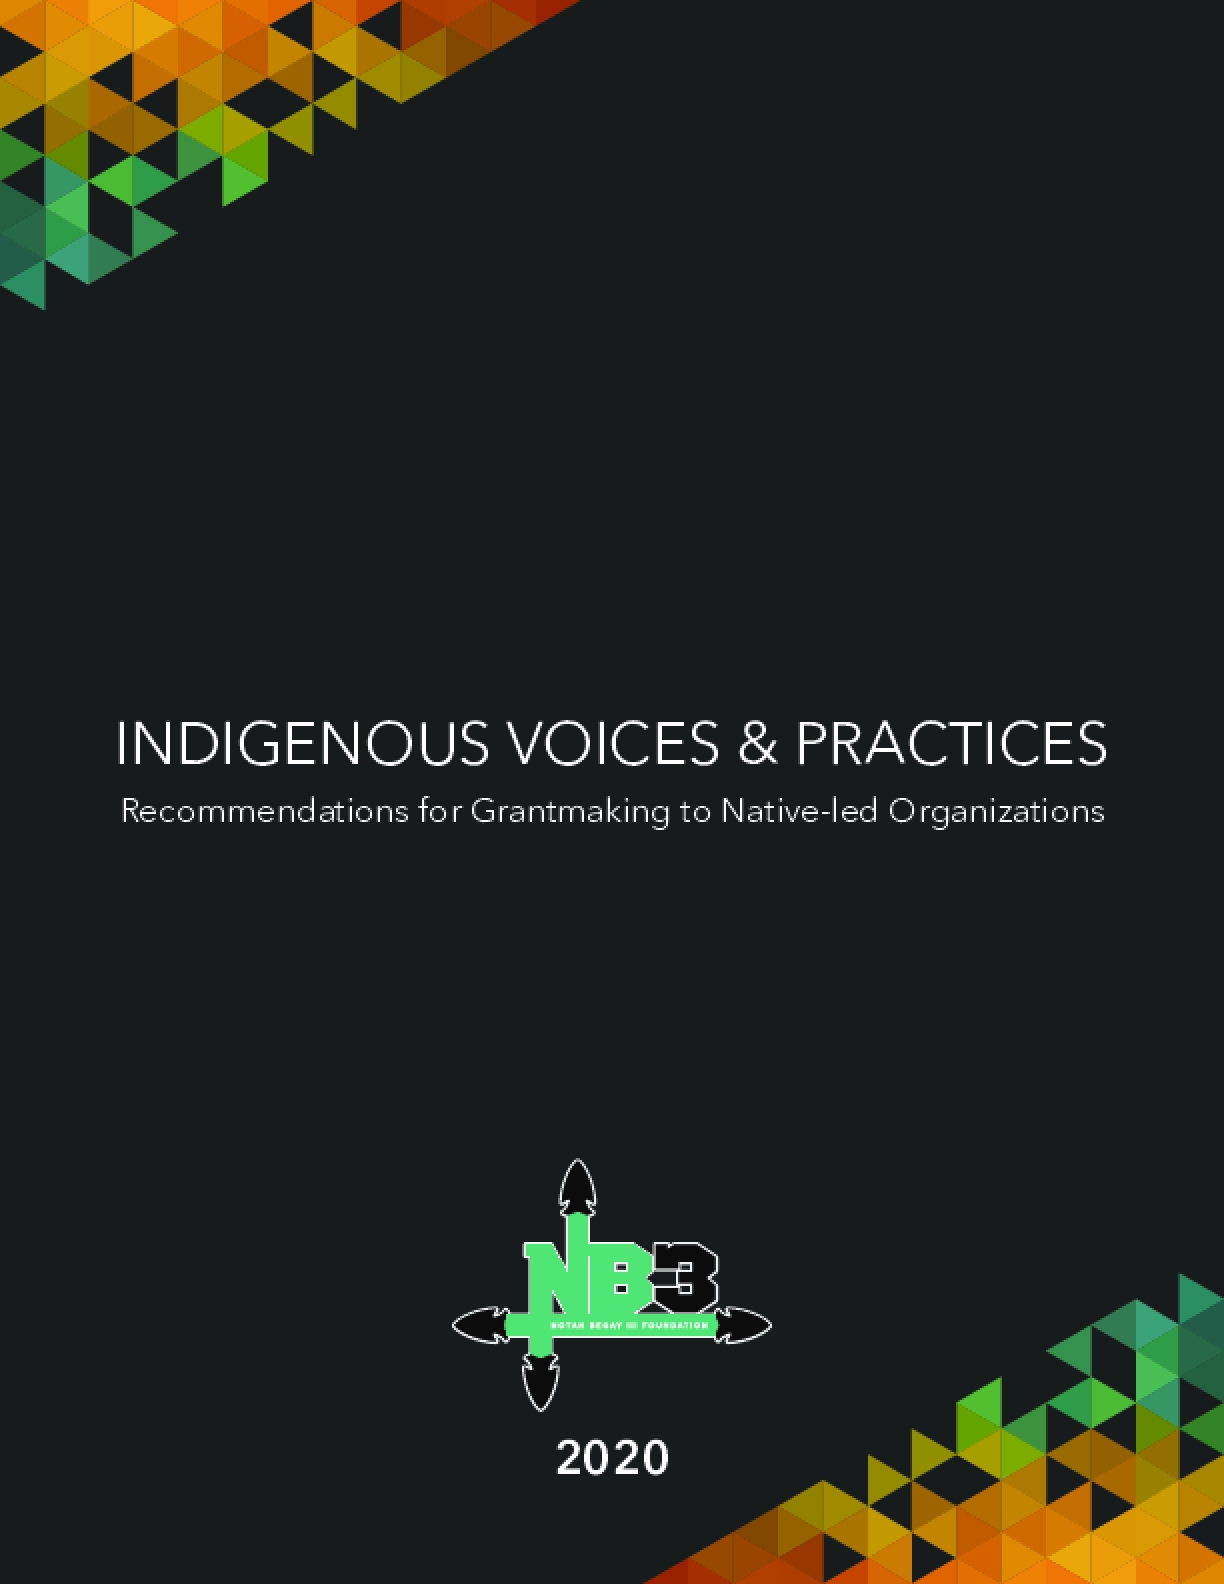 Indigenous Voices & Practices: Recommendations for Grantmaking to Native-led Organizations